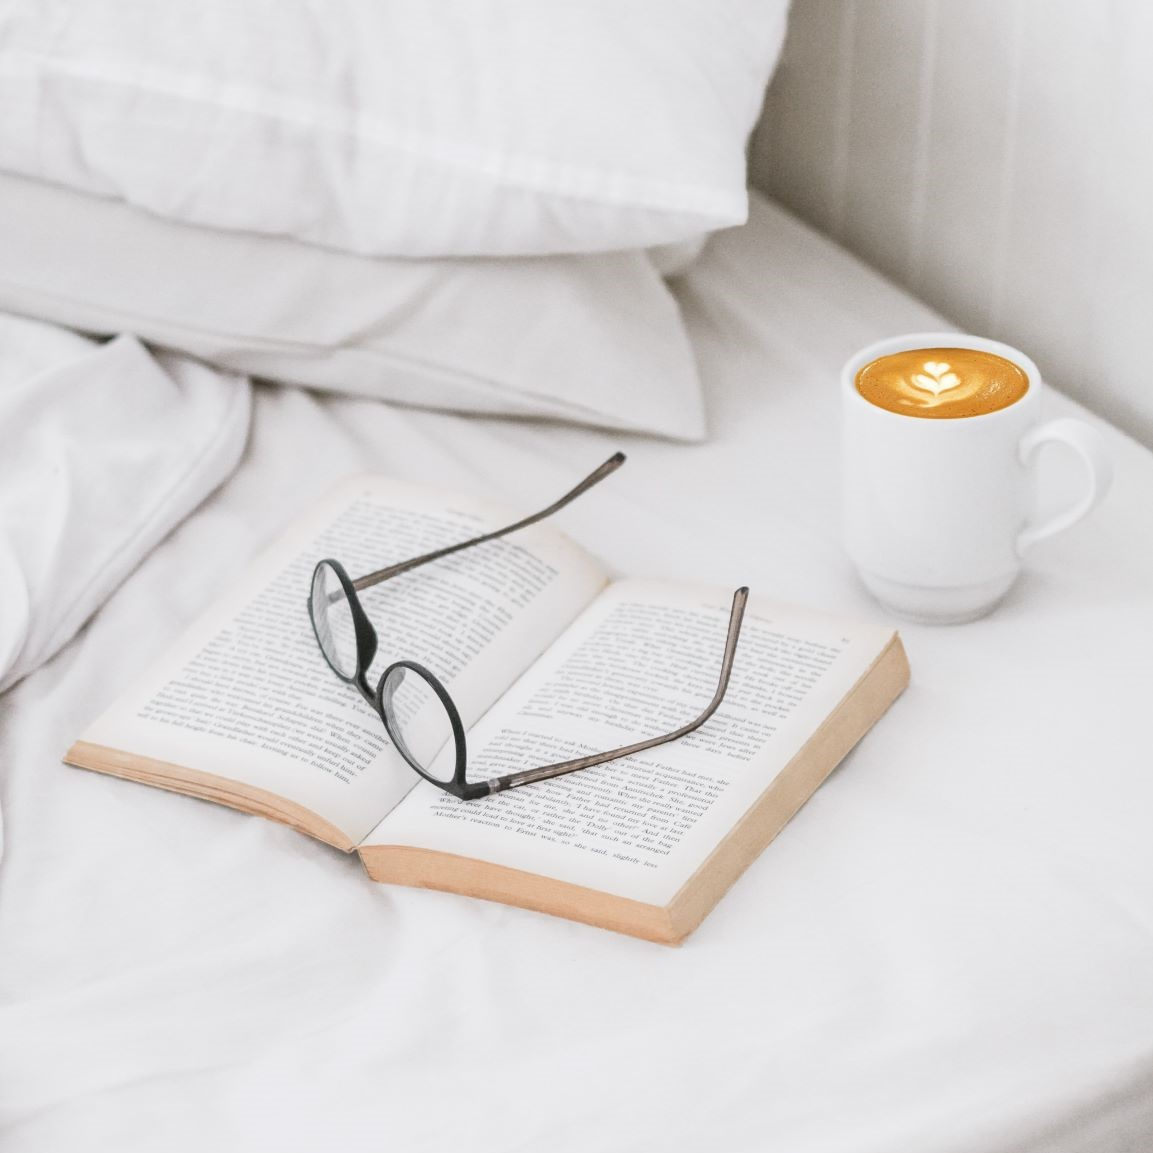 9 Books on my Reading List for 2019